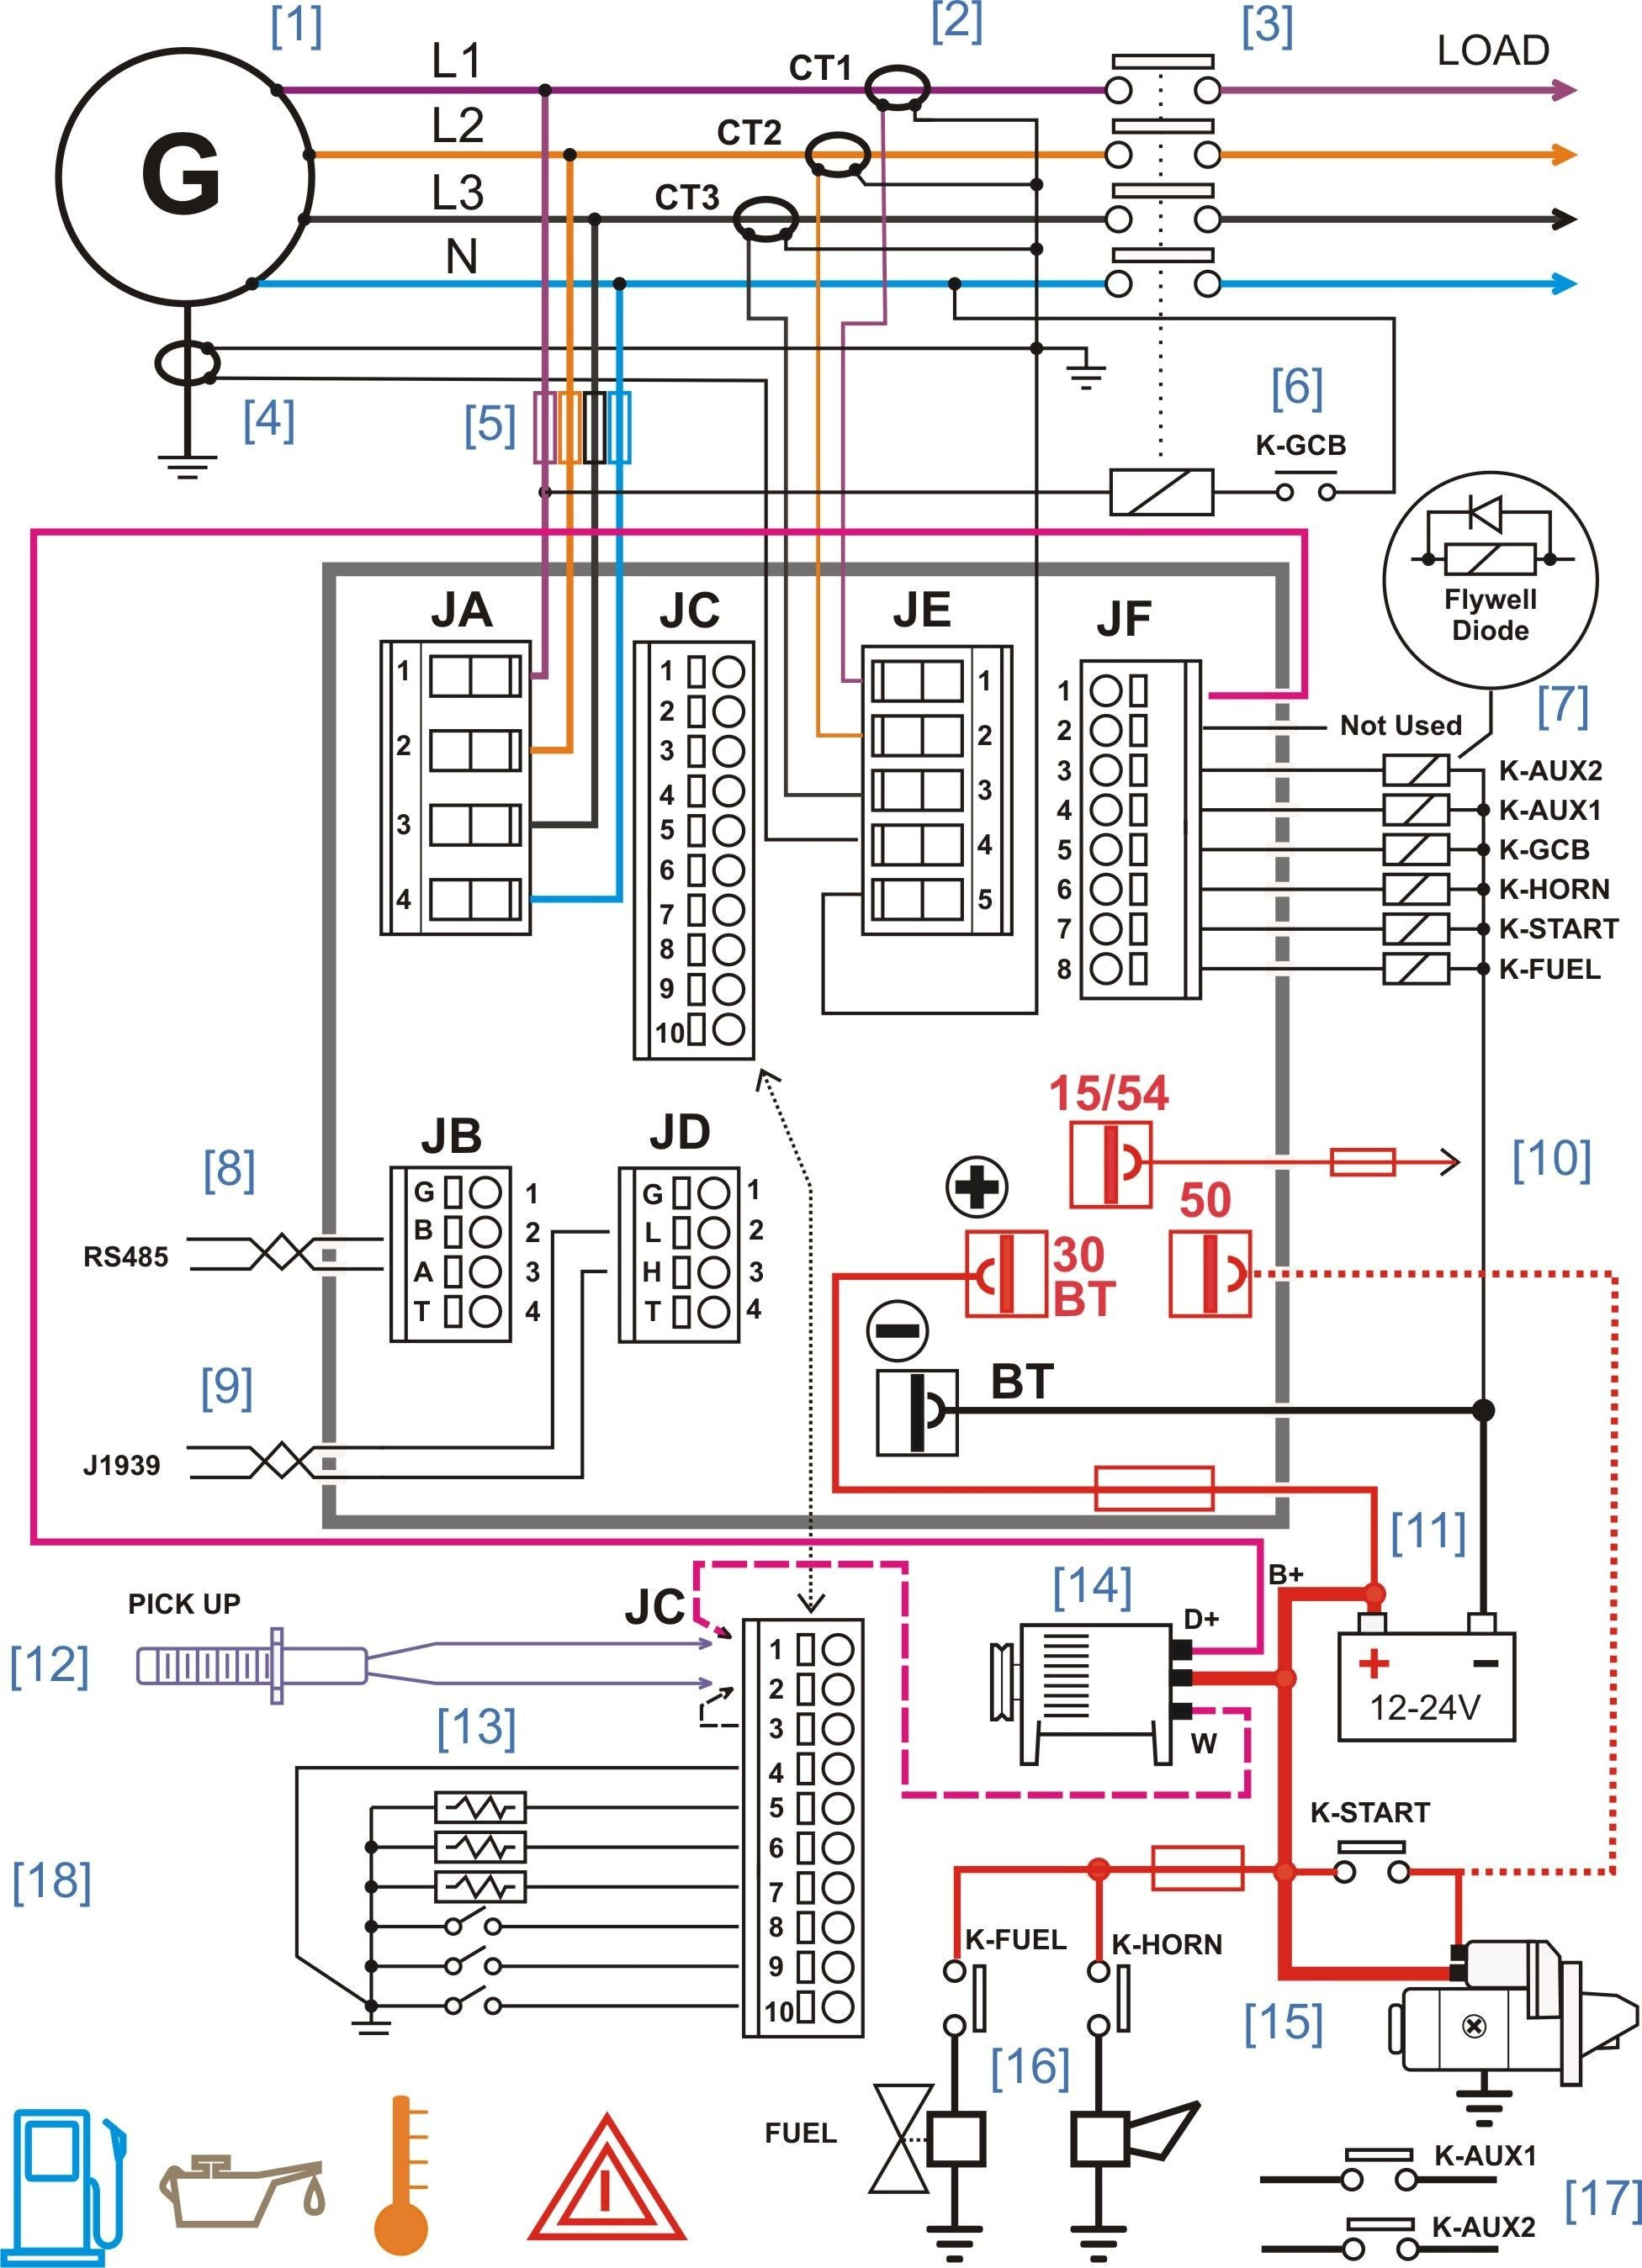 best wiring diagram software Collection-Diagram Creator Free Best Circuit Diagram Creator New Boss Od 2 Turbo Overdrive Pedal 13-b